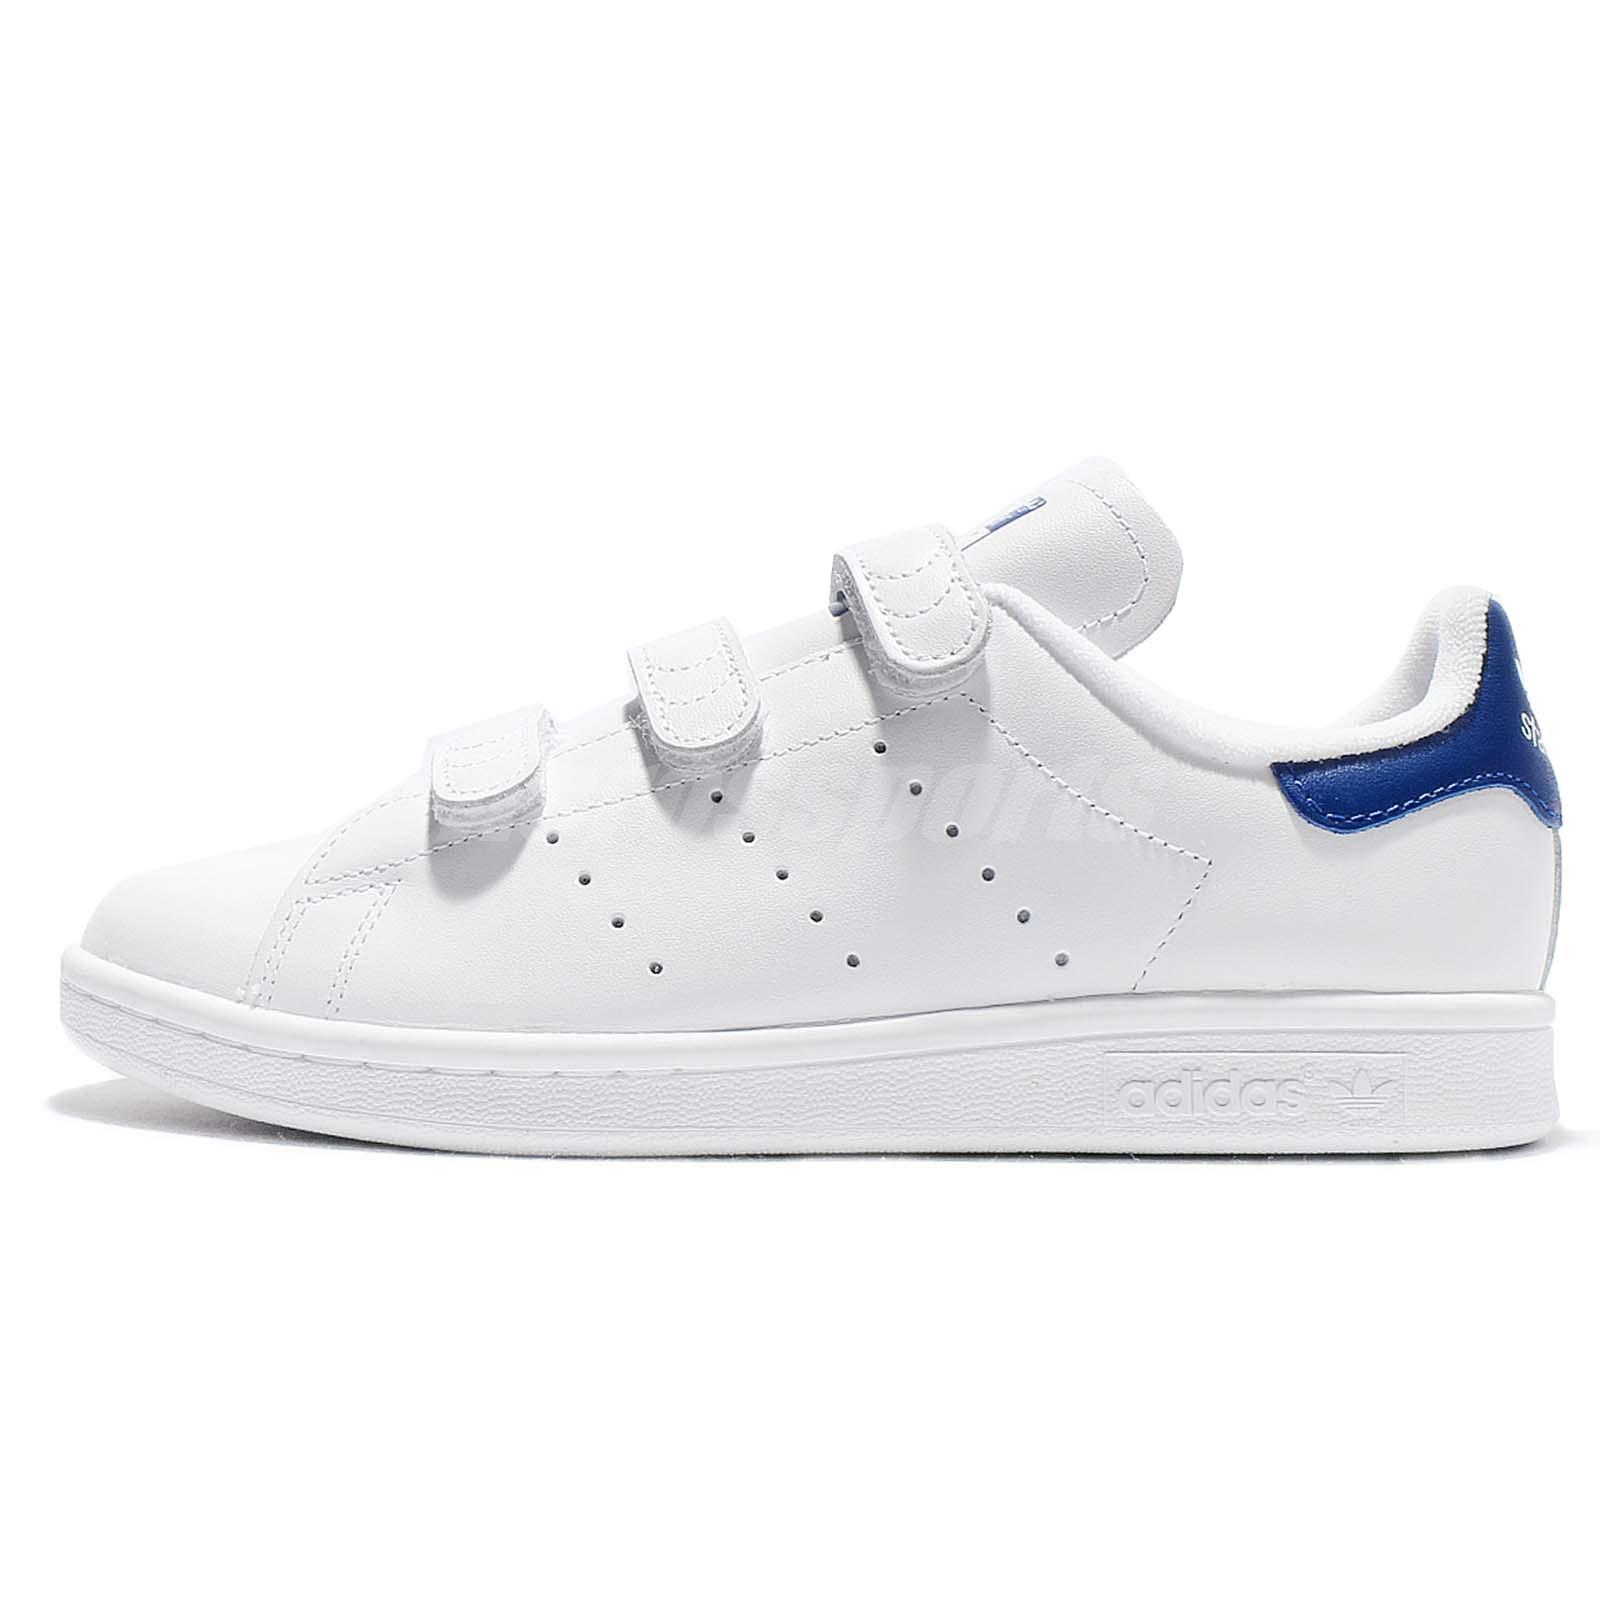 low priced f2075 7ef2c adidas Originals Stan Smith CF White Blue Leather Men Classic Shoes S80042